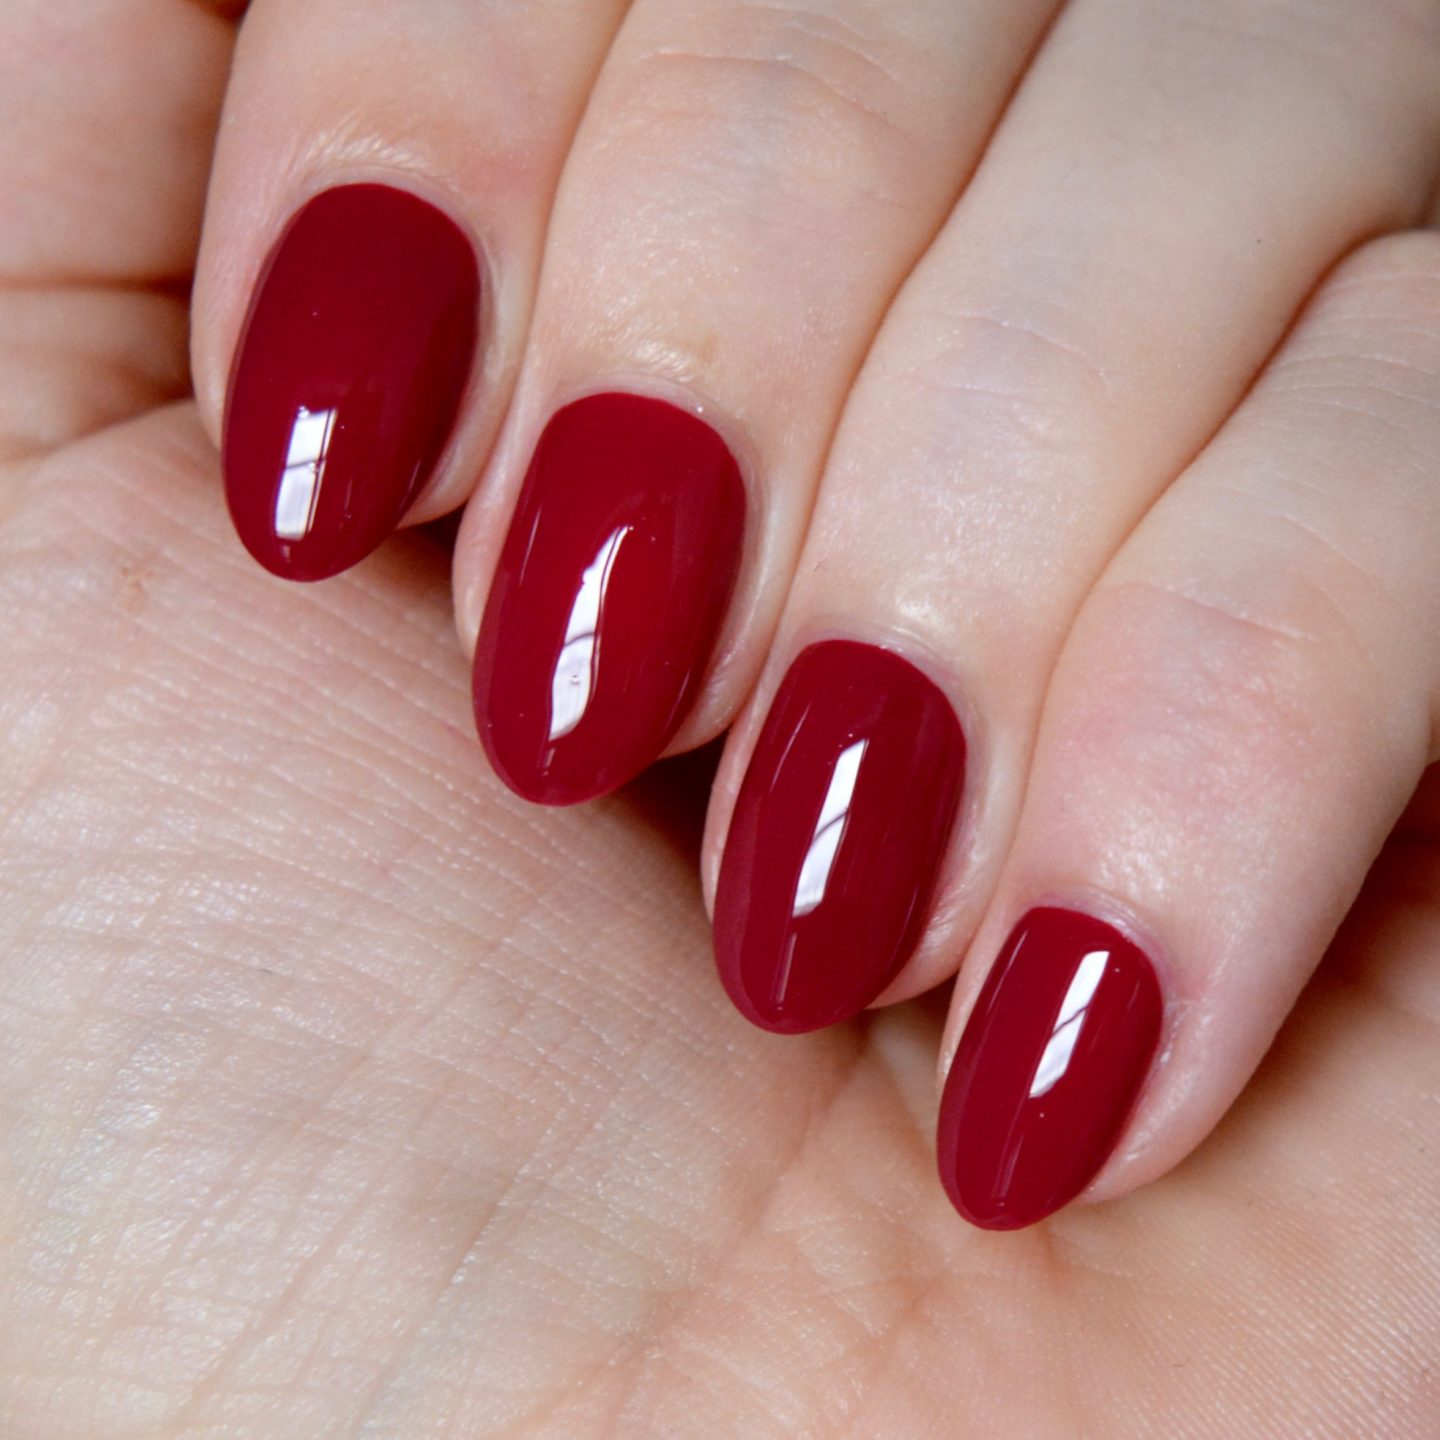 Essie Fall 2017 collection - Knee High Life